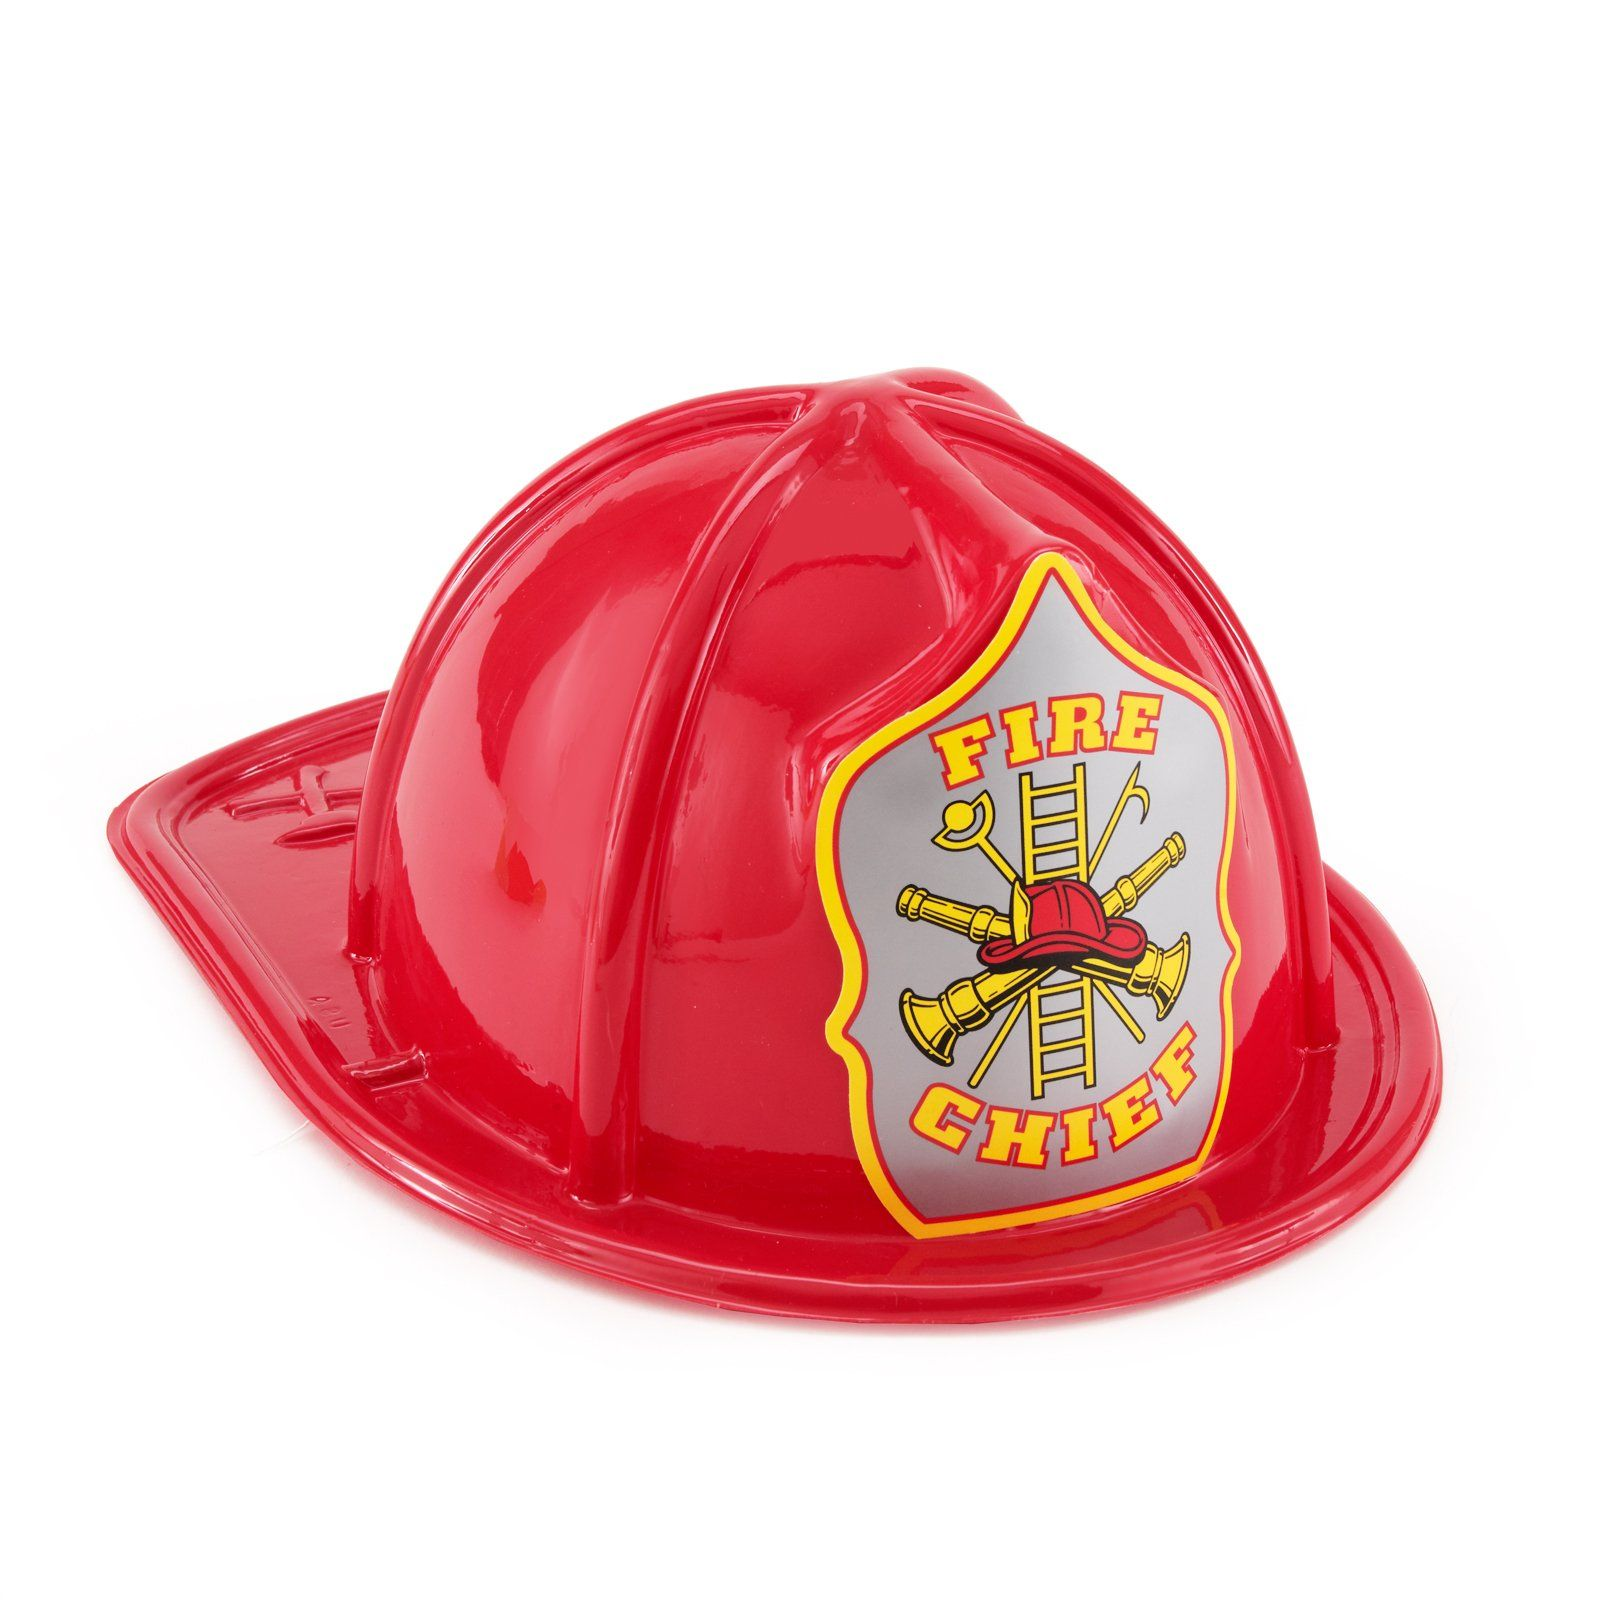 Child Size Red Plastic Fire Chief Hat from BirthdayExpress